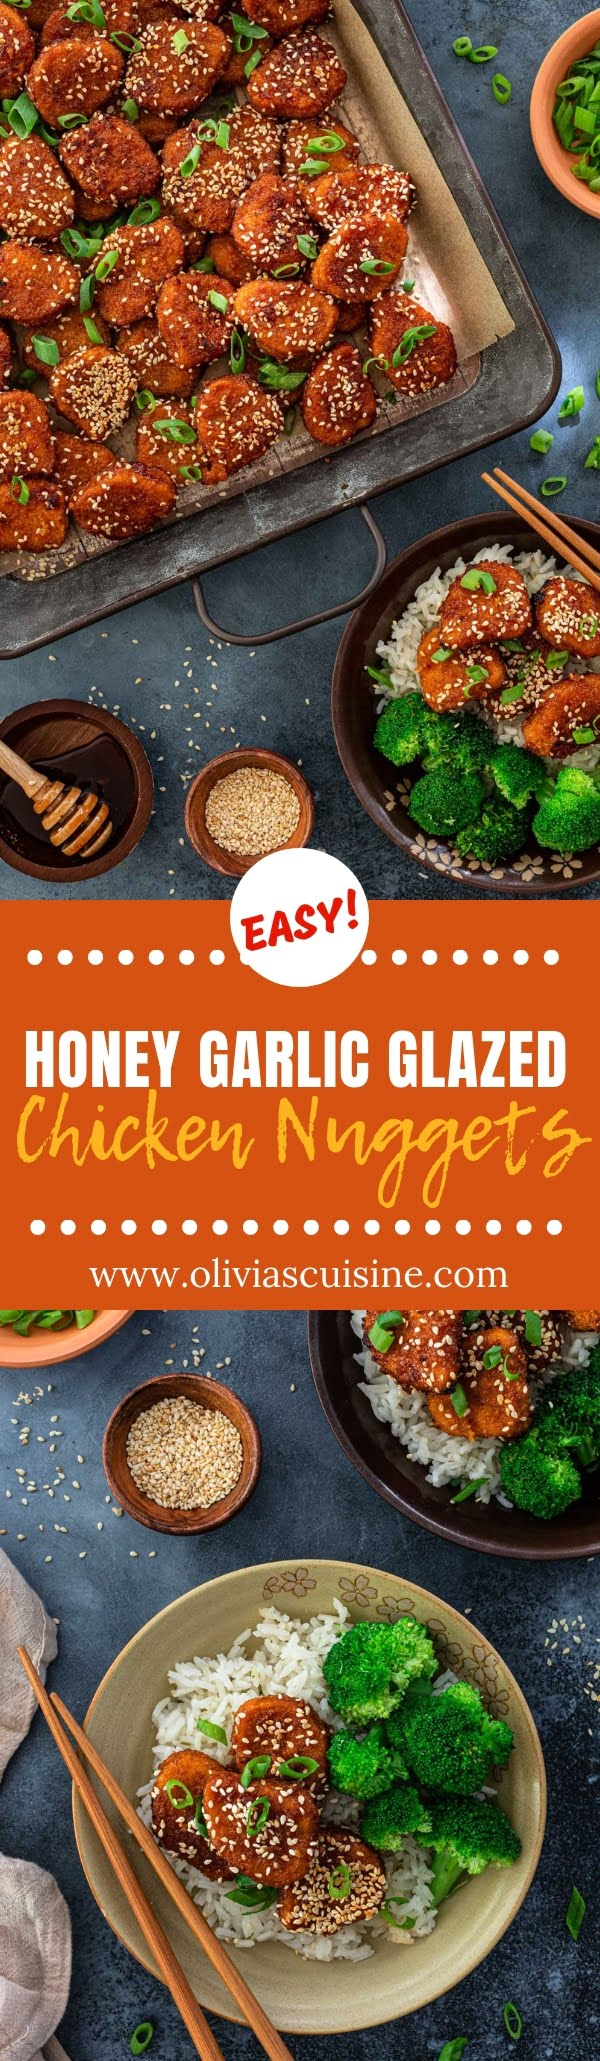 Honey Garlic Glazed Chicken Nuggets | www.oliviascuisine.com | A fun twist on a classic back-to-school dinner, these Honey Garlic Glazed Chicken Nuggets made with Tyson® Chicken Nuggets will get everybody rushing to the table! And the best part? They are ready in 15 minutes! #chicken #nuggets #backtoschool #recipes